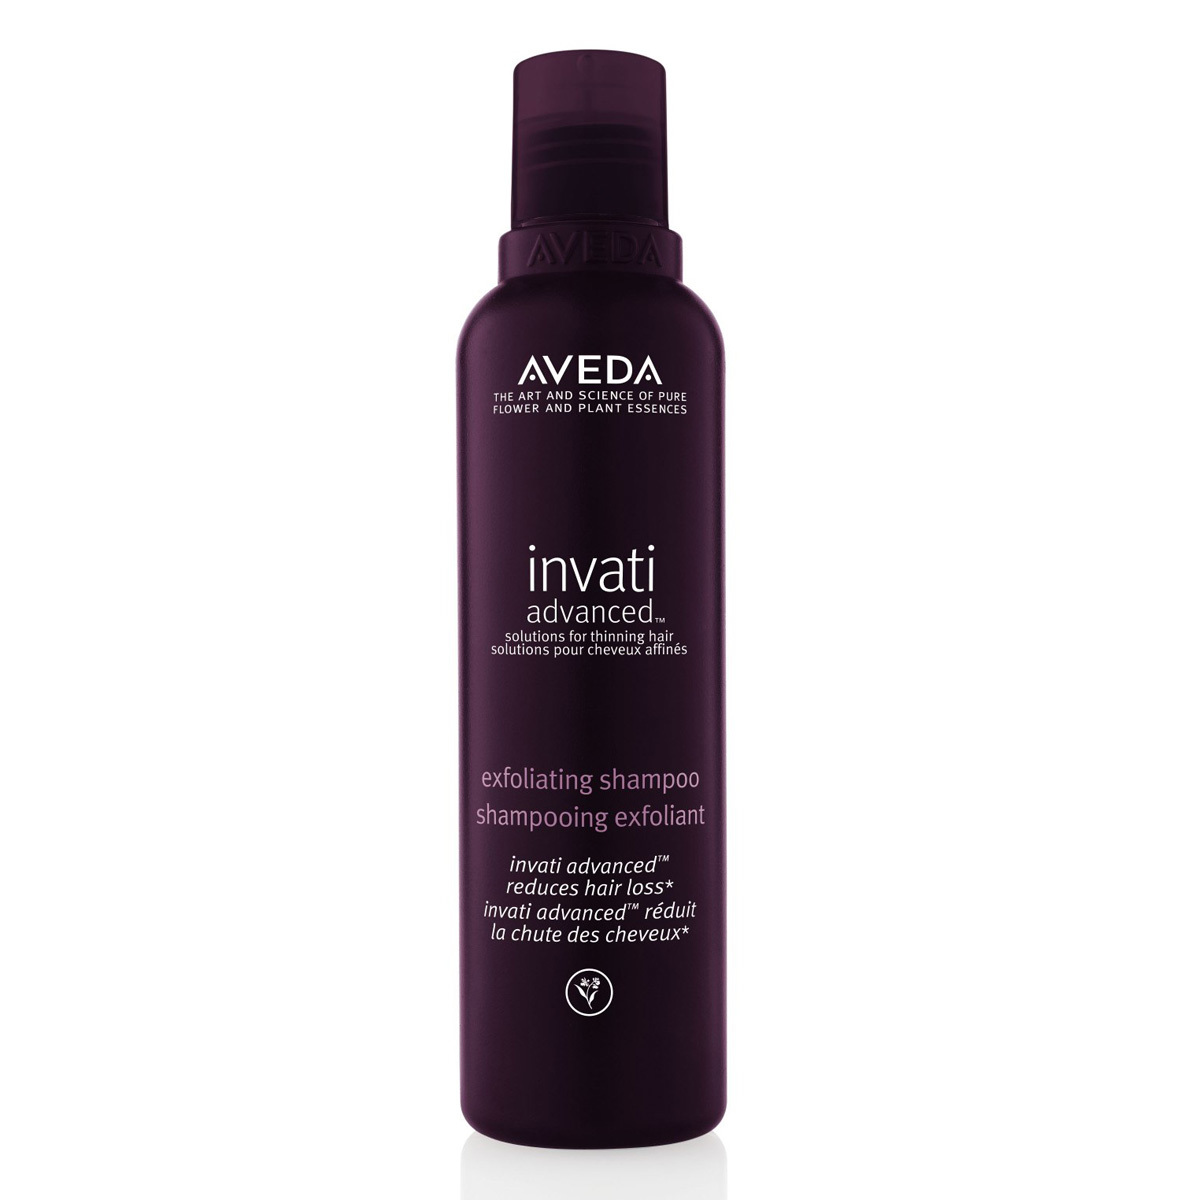 Champú exfoliante Invati Advanced de Aveda.